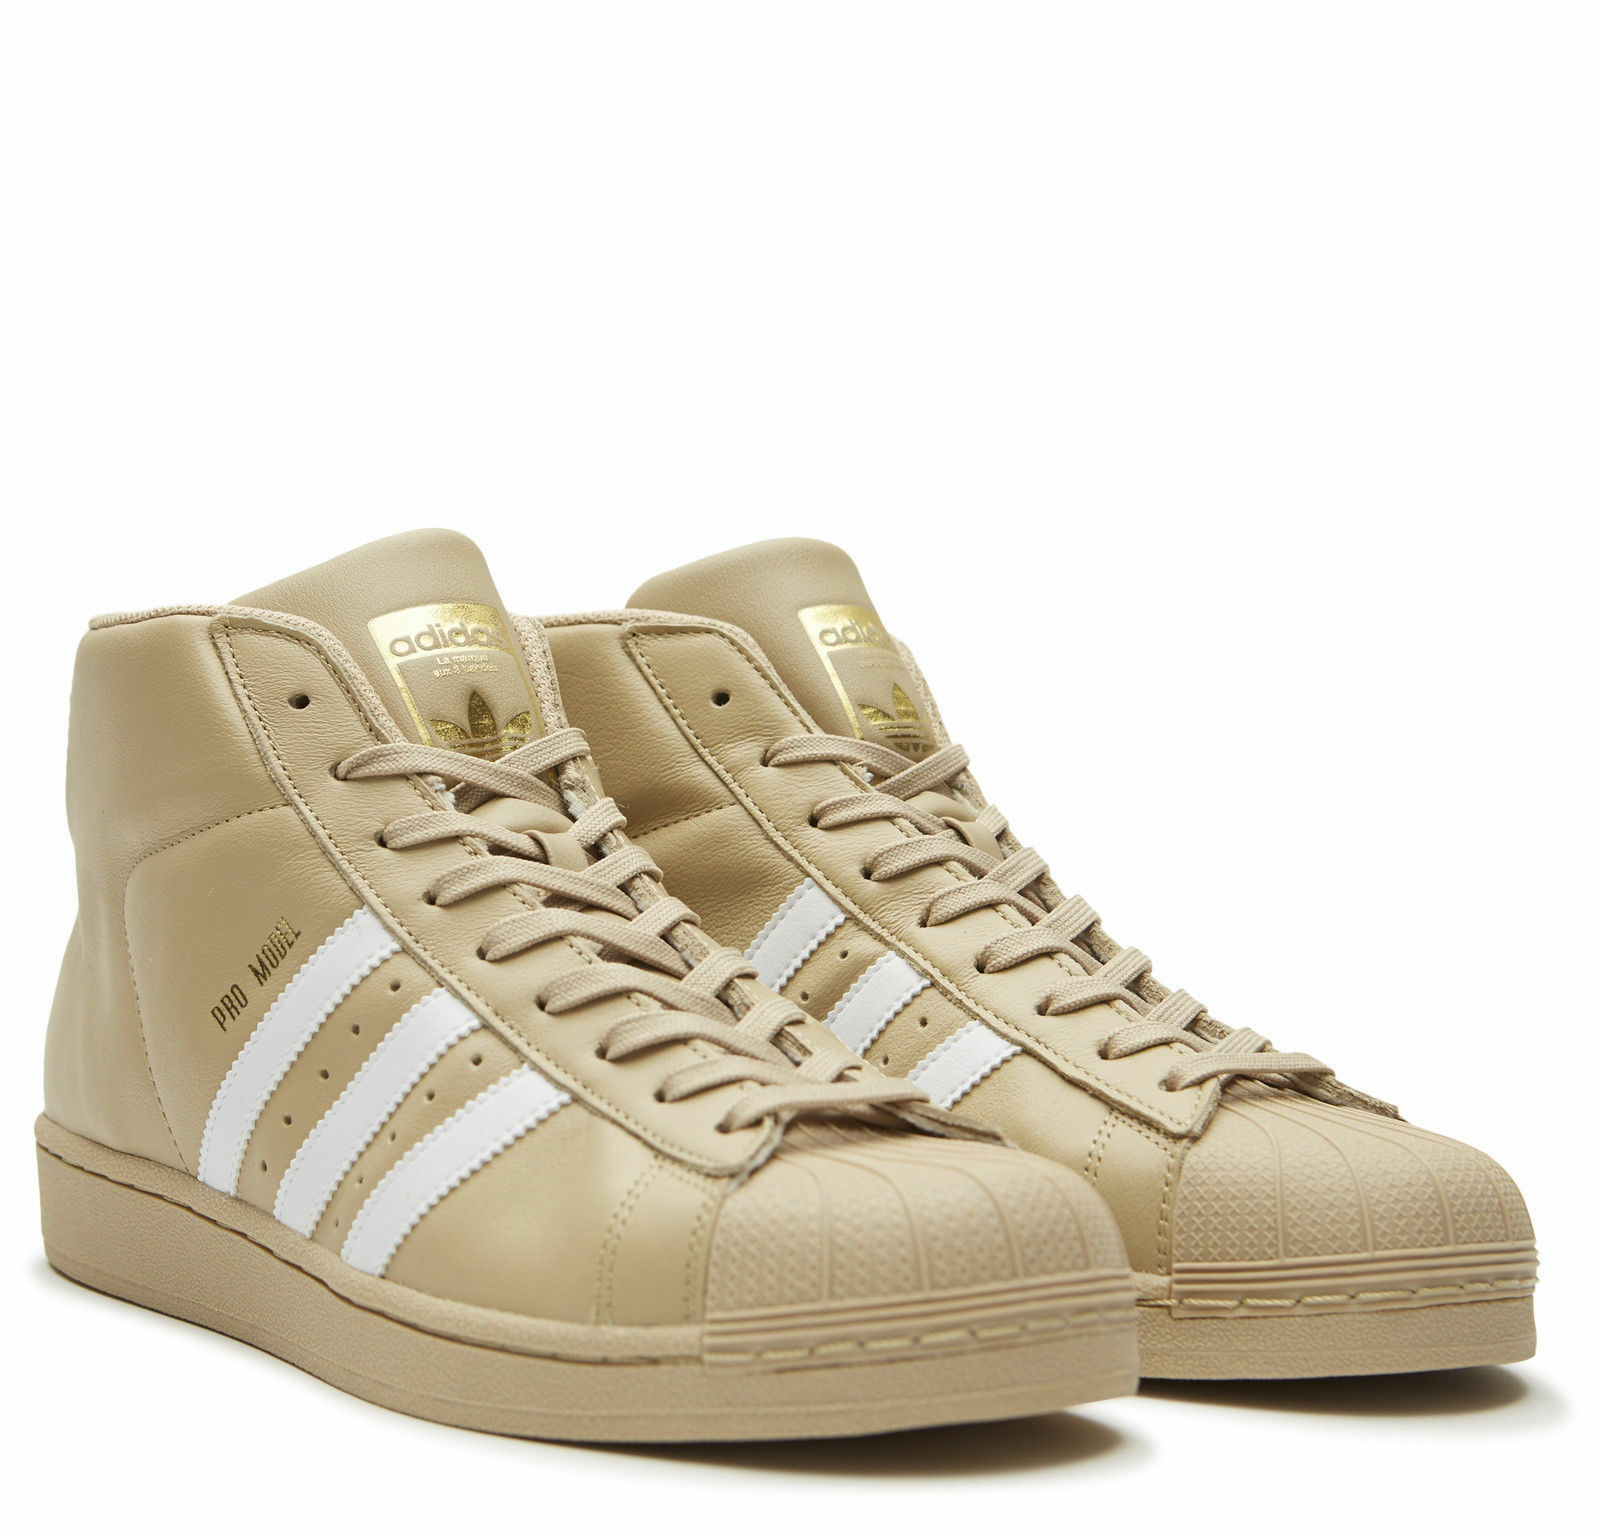 adidas originals männer pro model khaki / gold - männer originals cg5072 9,5 leder 8055e9